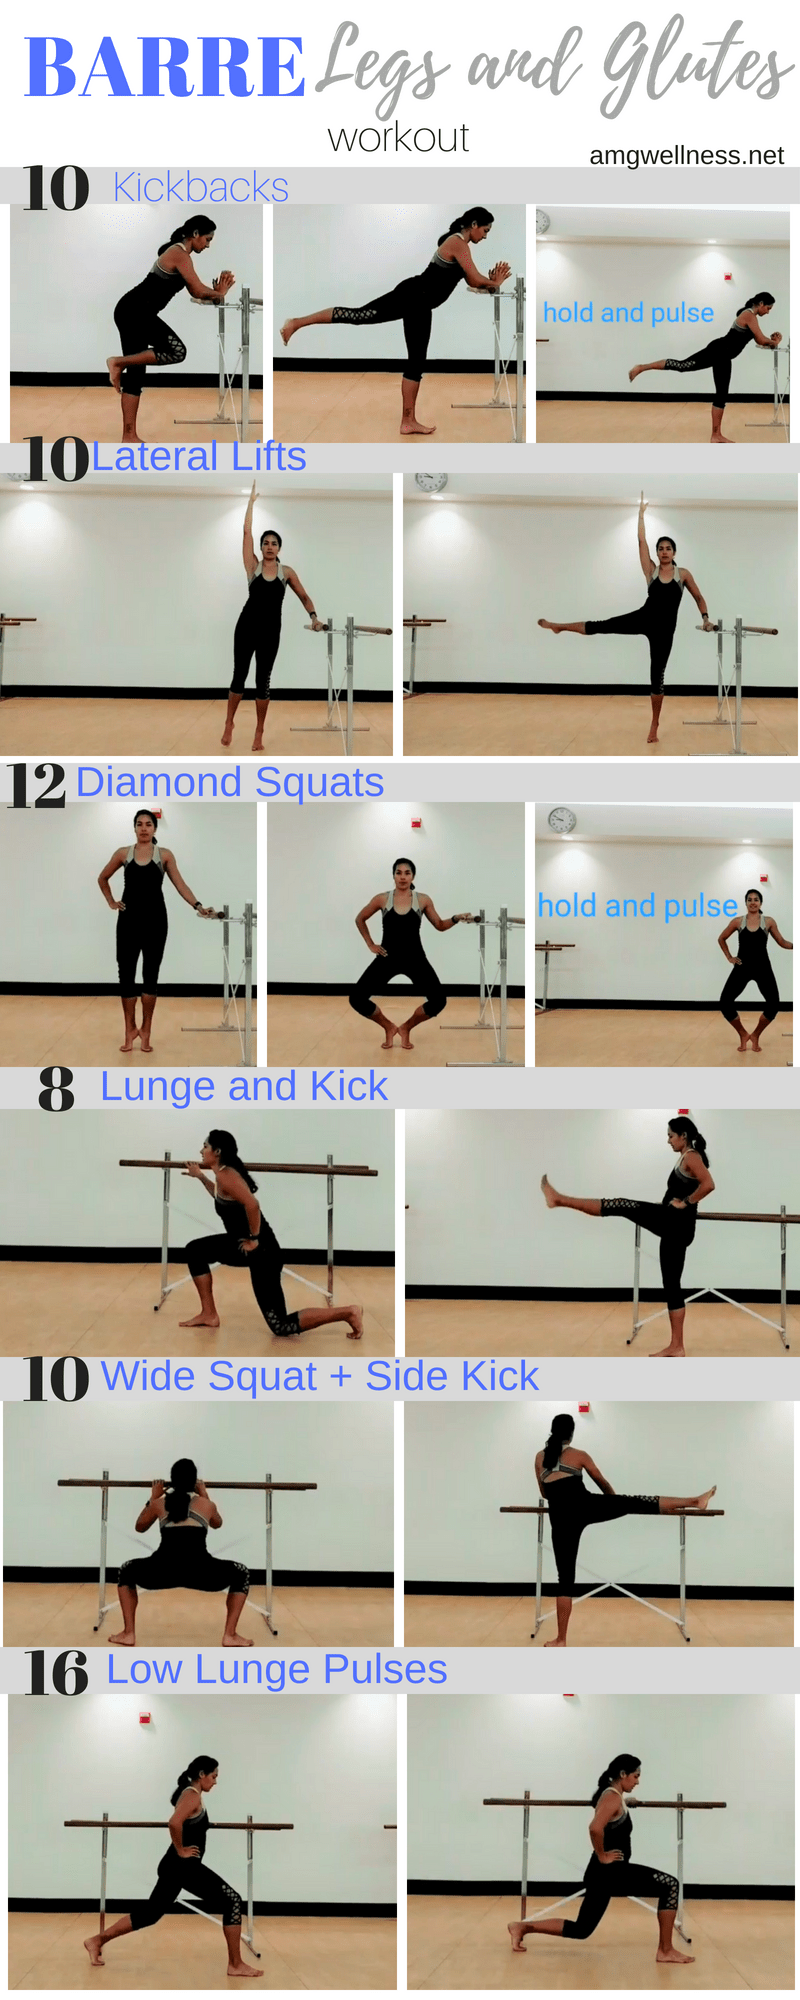 Barre Legs And Glutes Workout No Barre Needed This Workout Can Be Done In 10 Minutes Or Extend Barre Workout Pilates Workout Videos Pilates Workout Routine